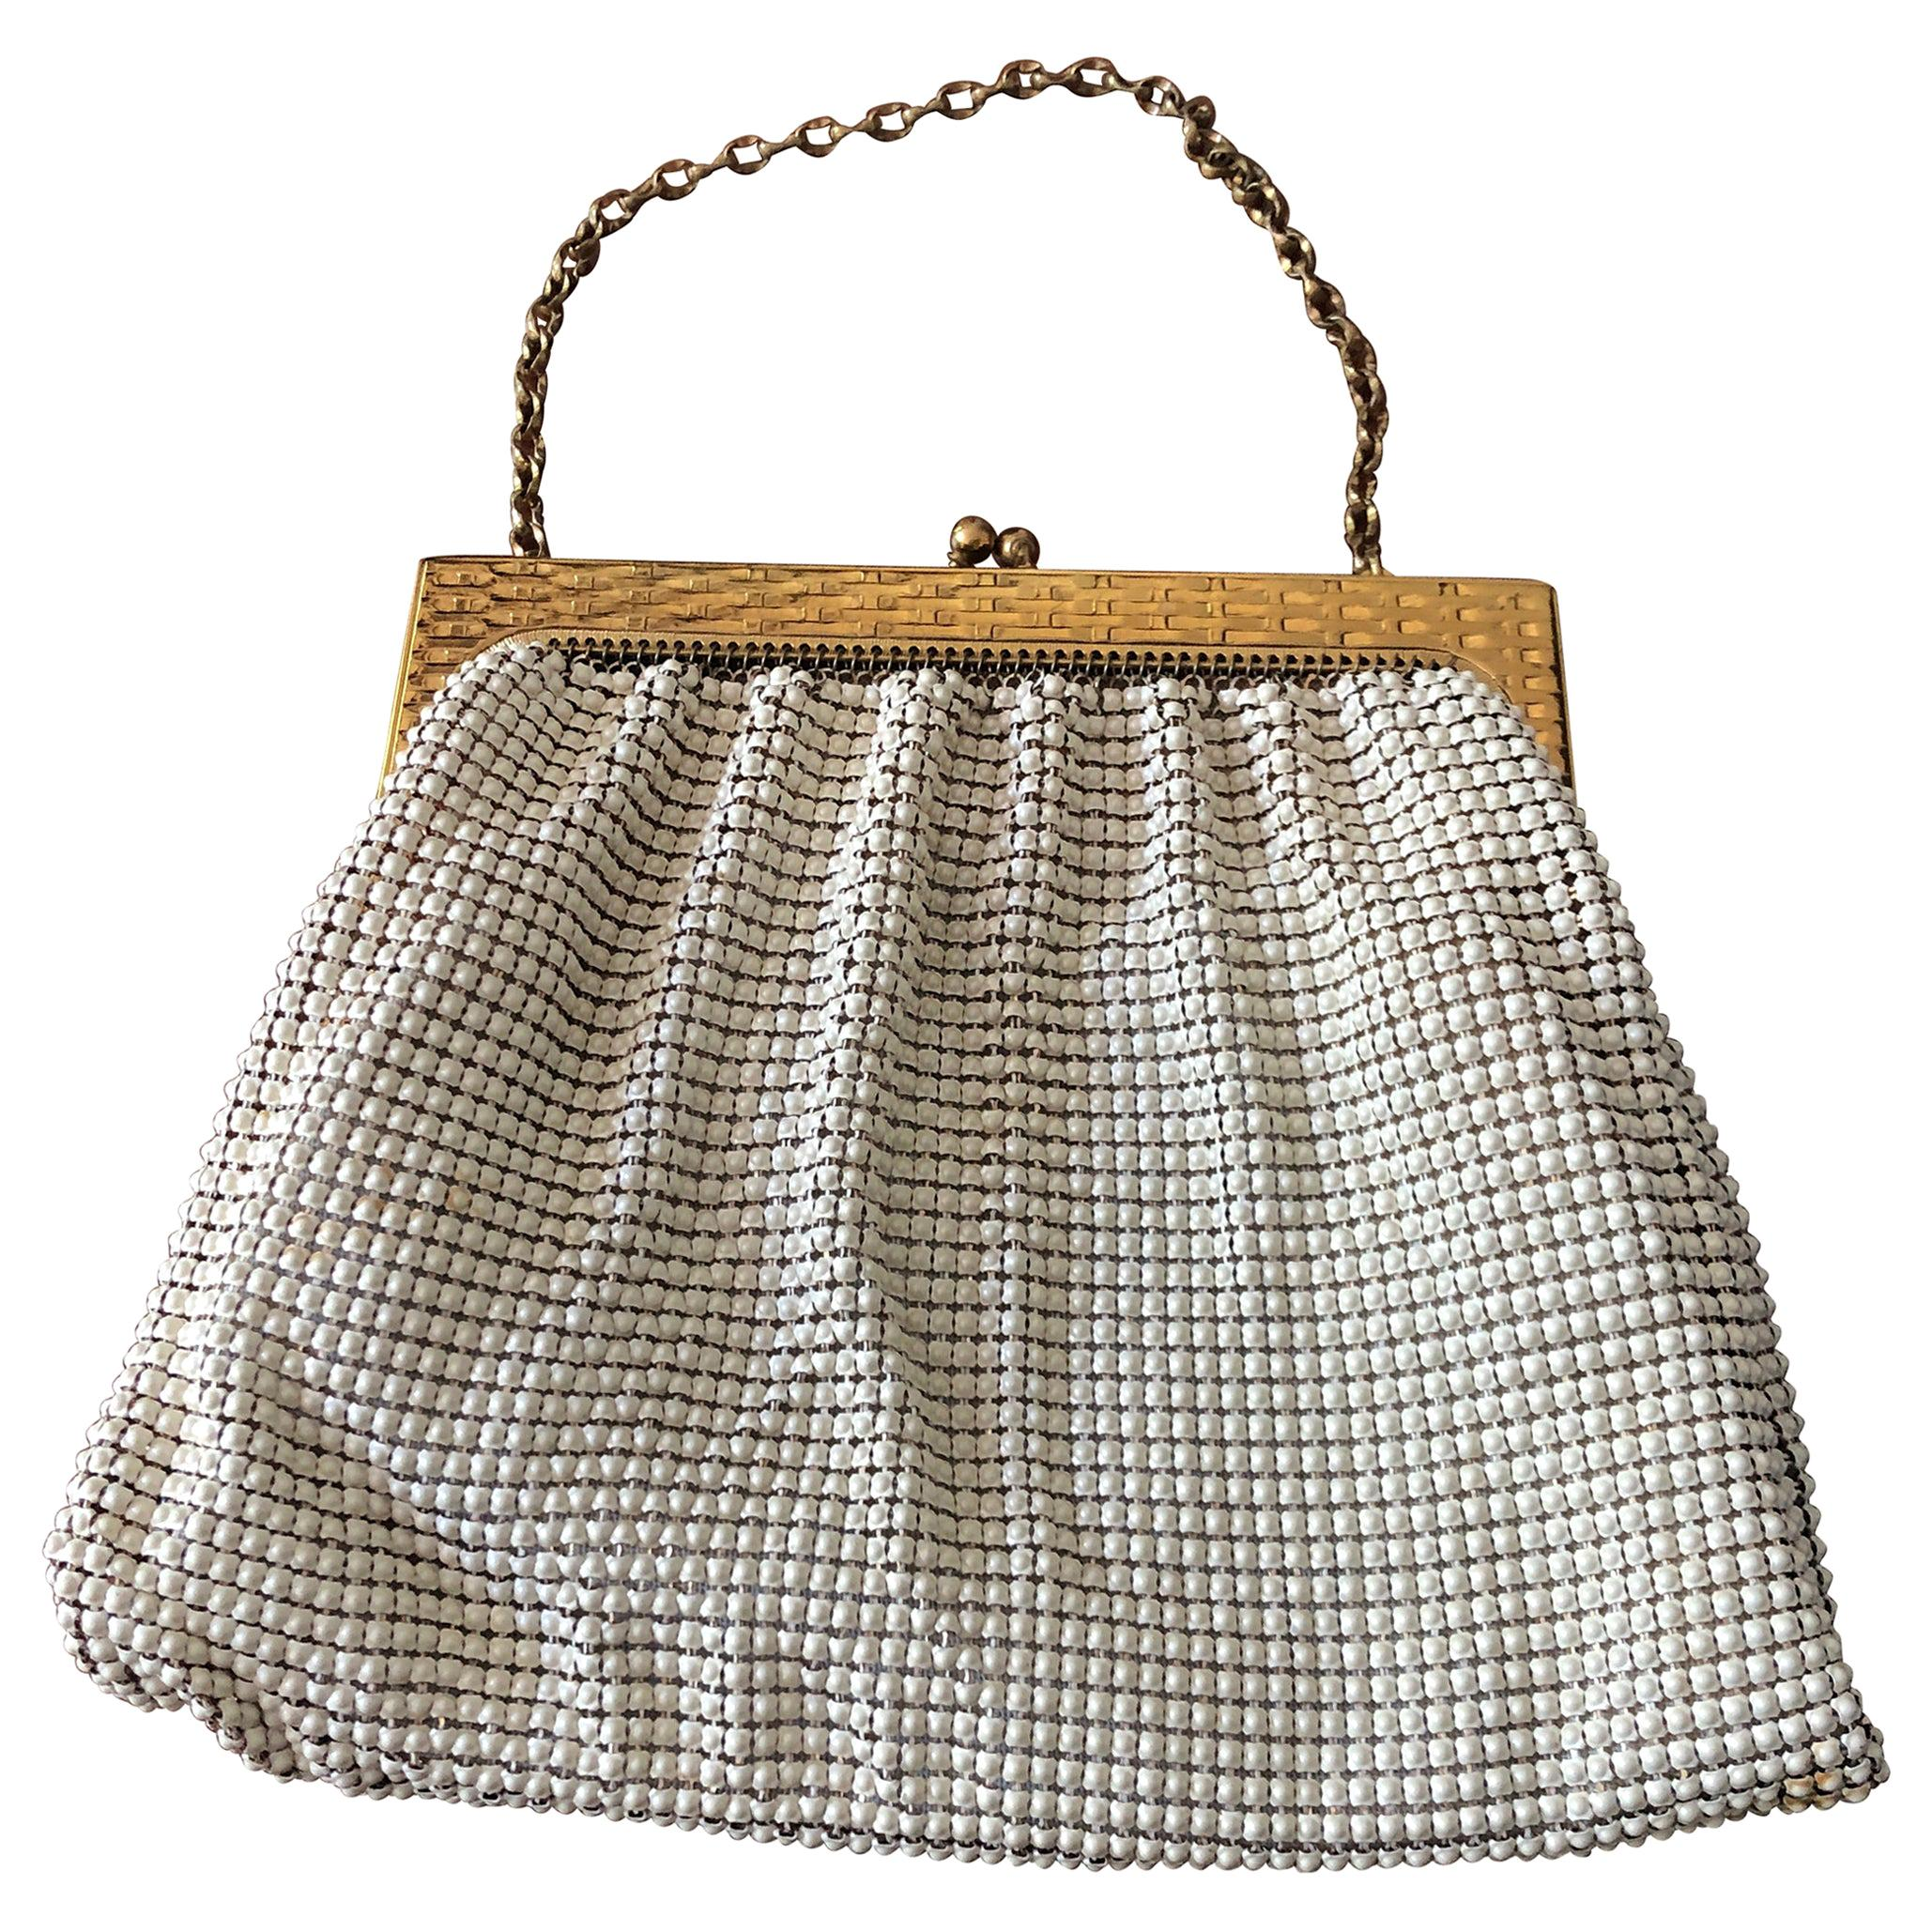 A 1960s Whiting & Davis Gold and White Mesh Hand Bag